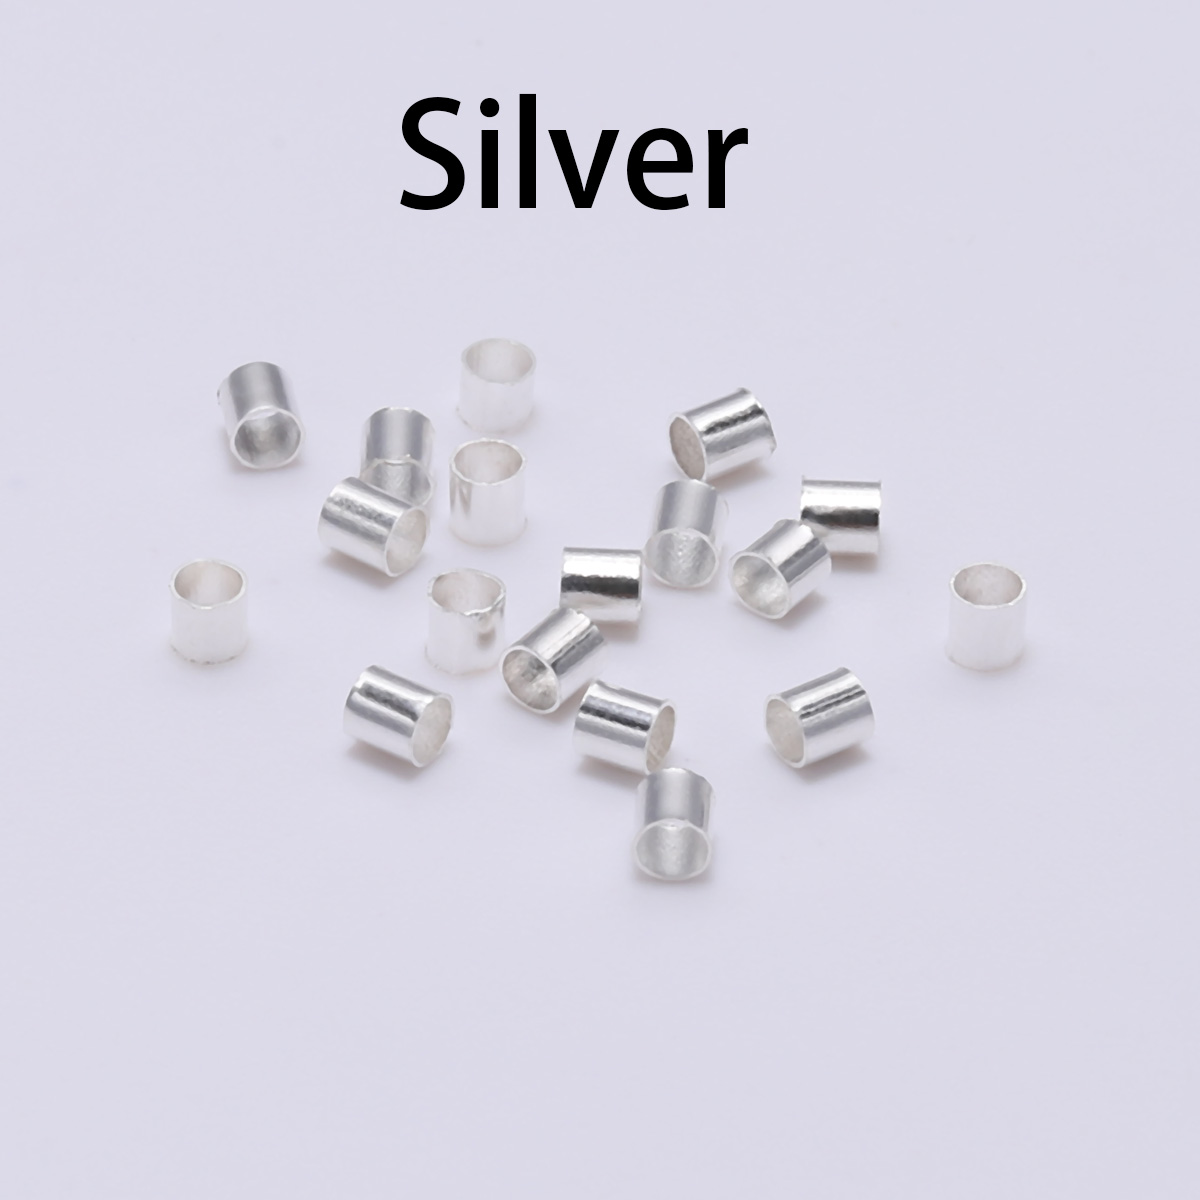 1000Pcs GOLD//SILVER Plated,COPPER,BLACK,Tube Crimp End Spacer BEADS 1.5MM 2.0MM